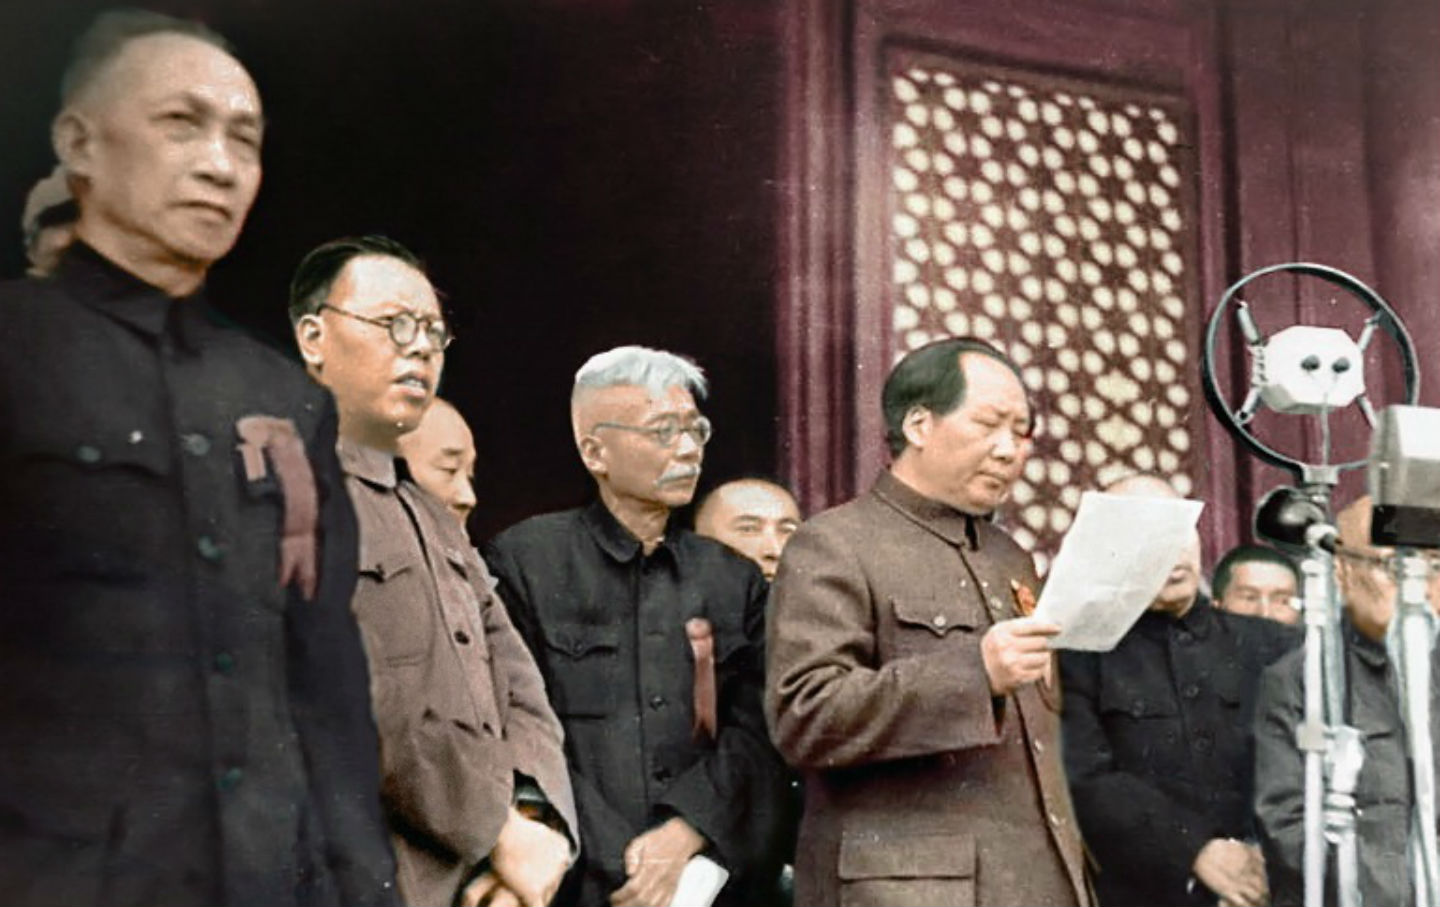 Mao Zedong outlines the new Chinese government